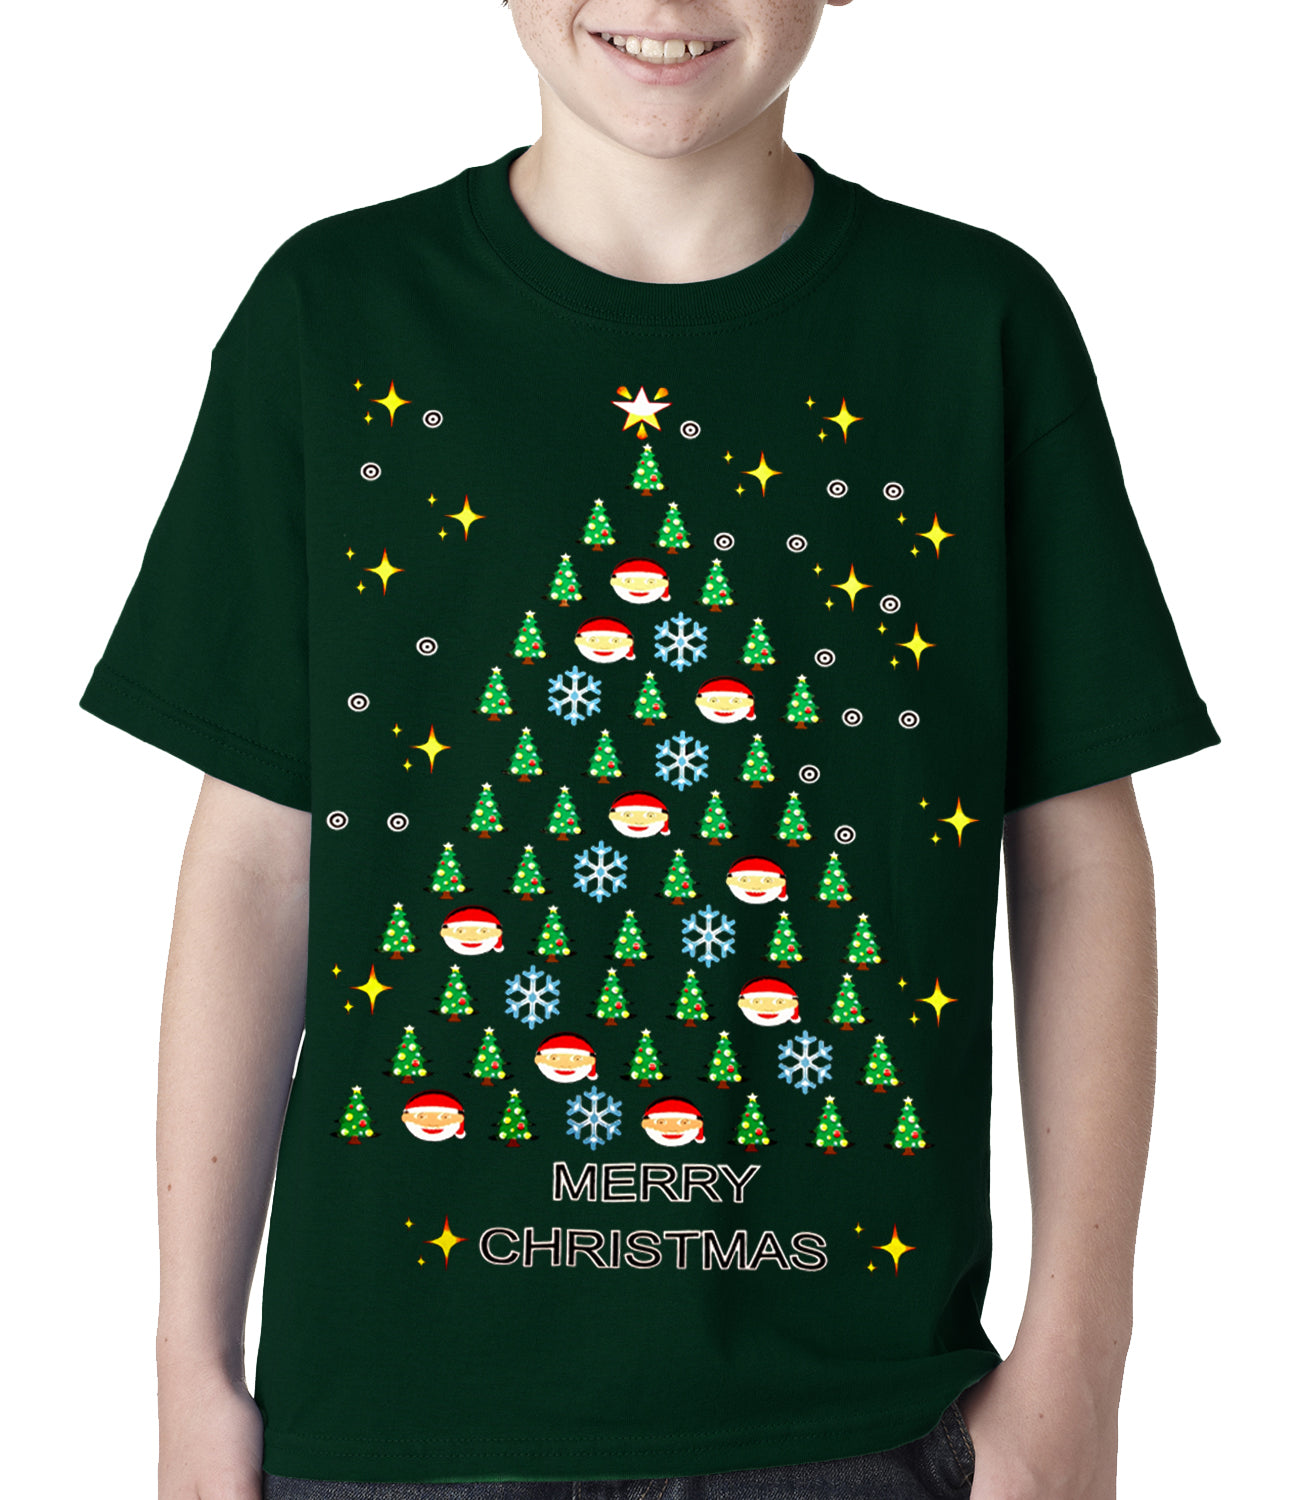 91930c0fa3a Ugly Christmas Tee - Emoji Christmas Tree Ugly Christmas Kids T-shirt